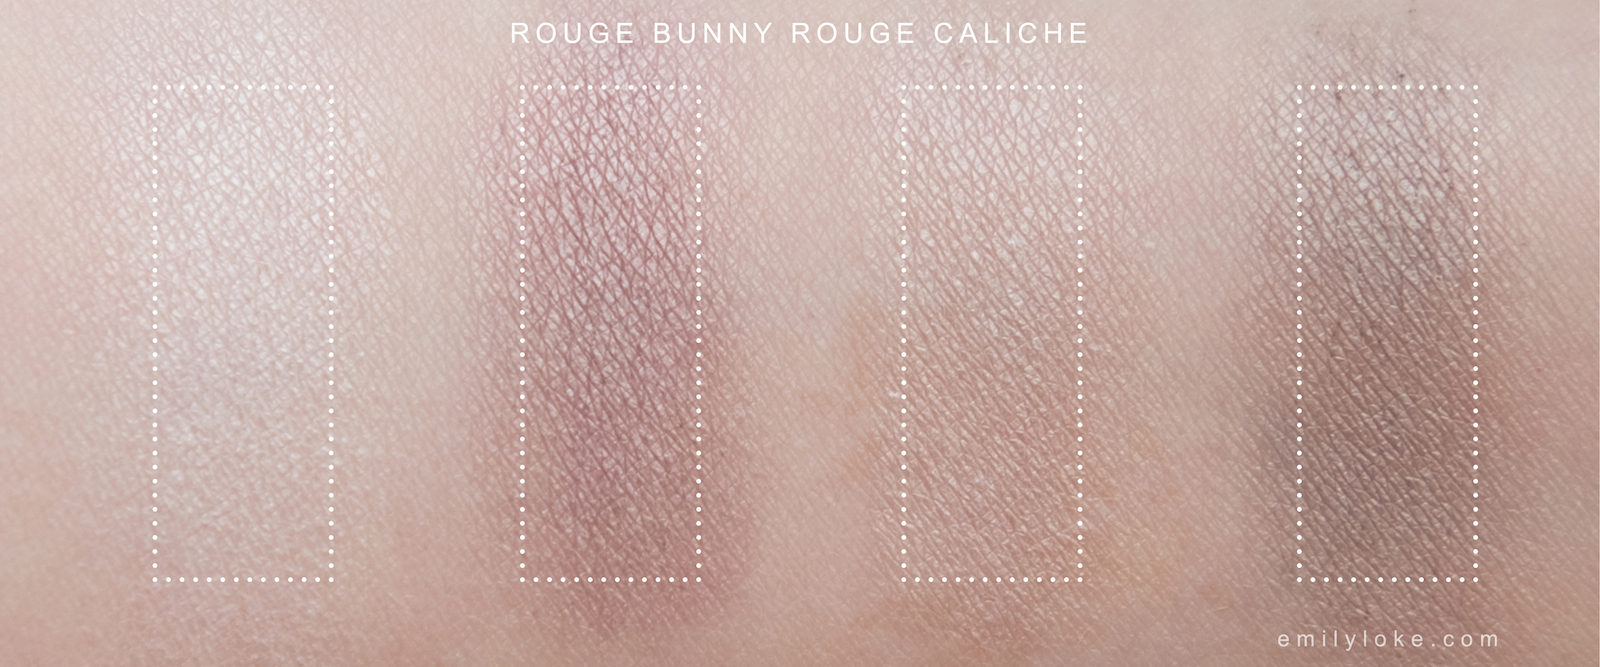 RBR Caliche Swatches